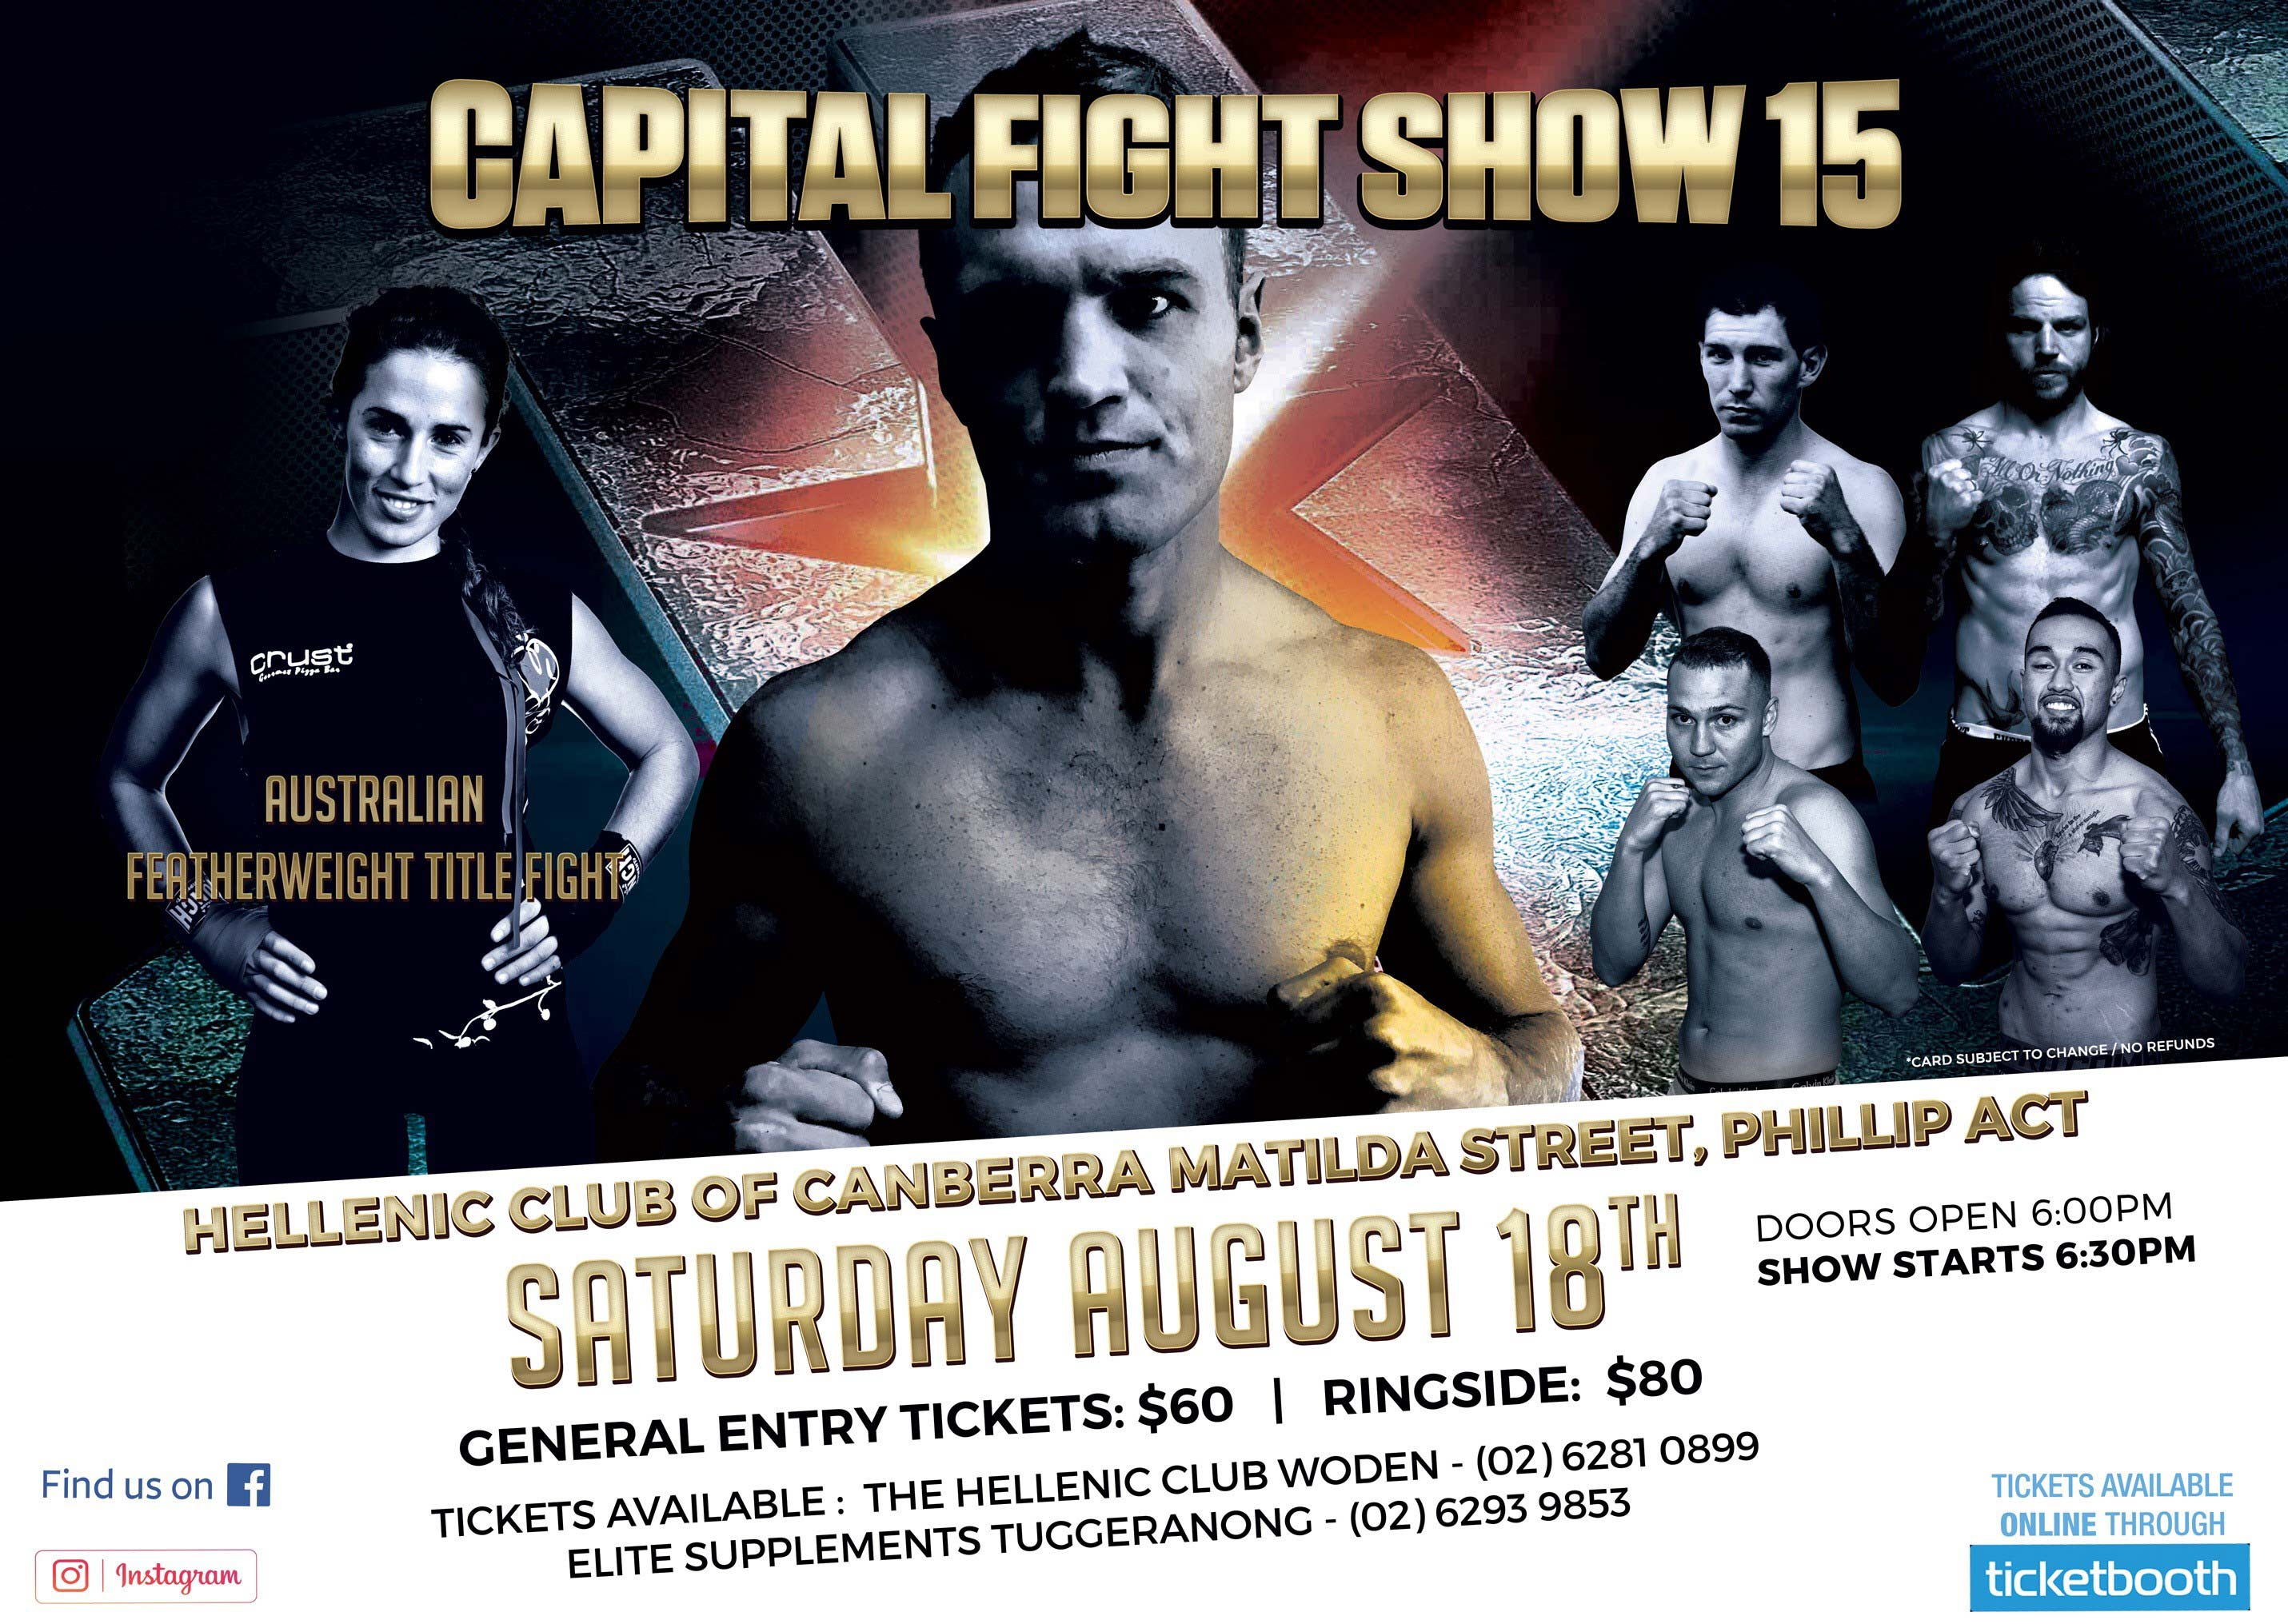 Tickets for Capital Fight Show 15 in Woden from Ticketbooth